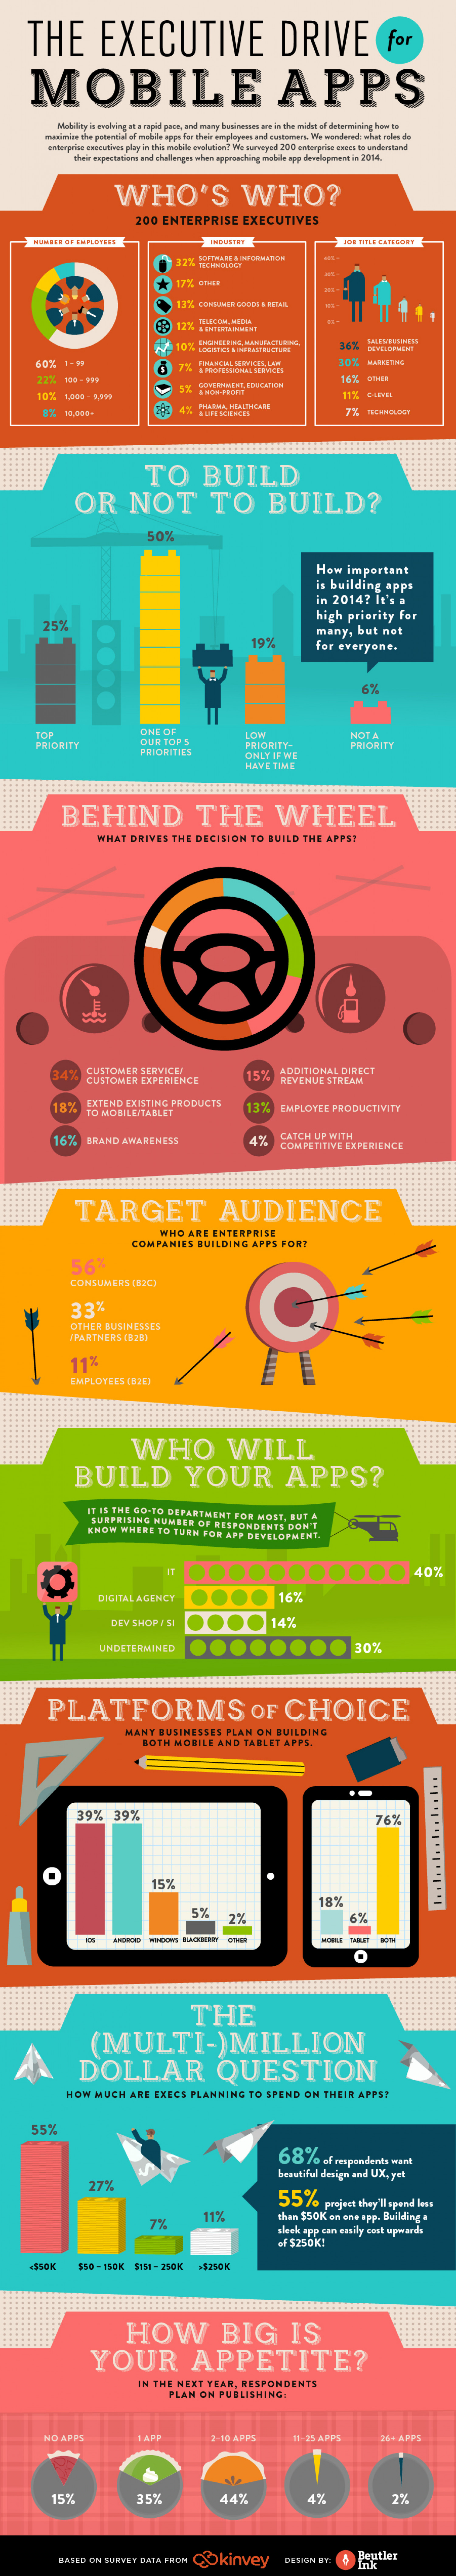 The Executive Drive for Mobile Apps Infographic